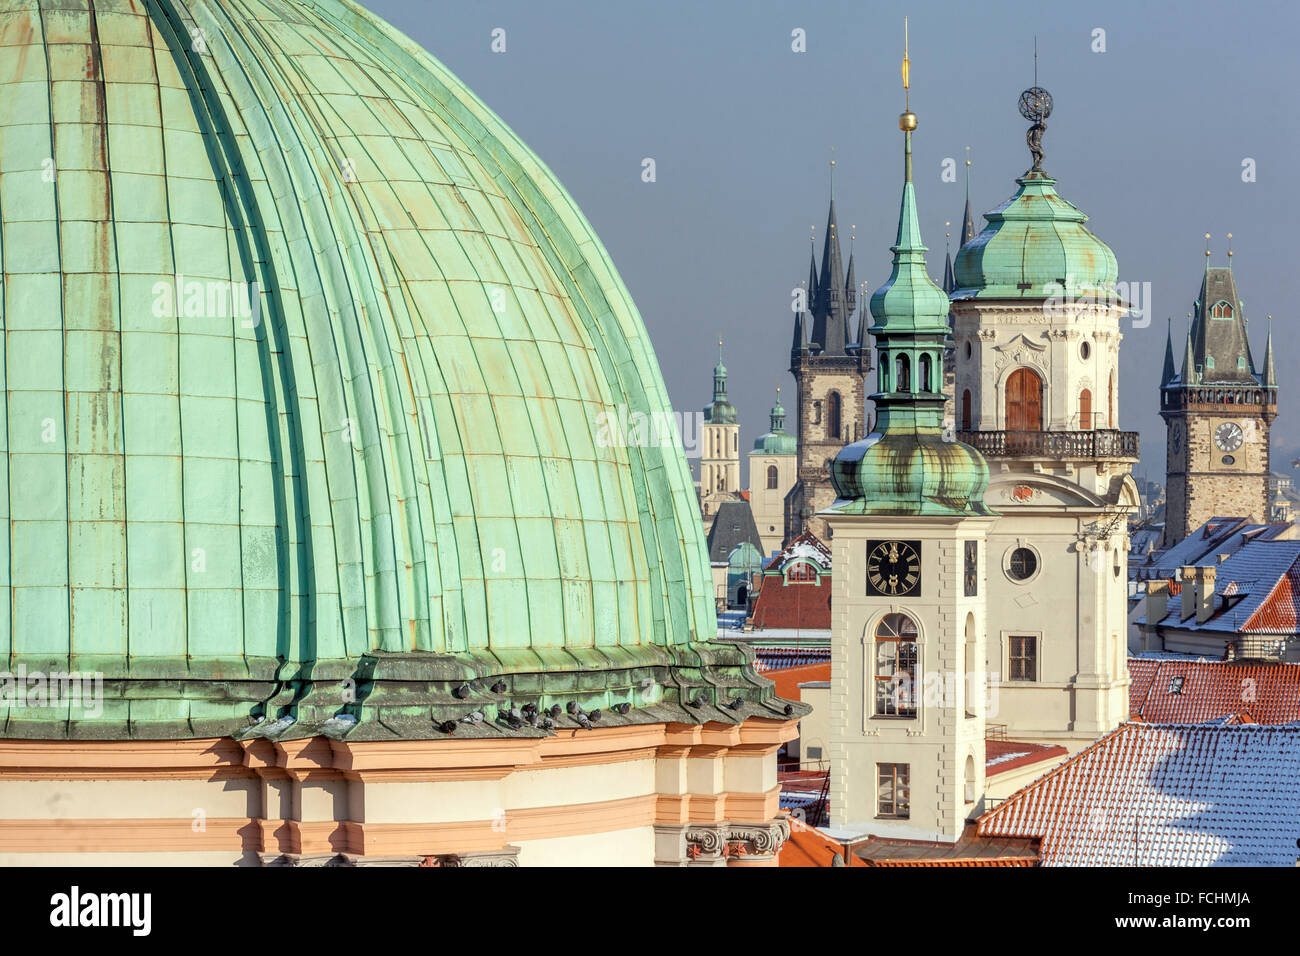 Towers and rooftops of Old Town, Clementinum,  Prague, Czech Republic - Stock Image